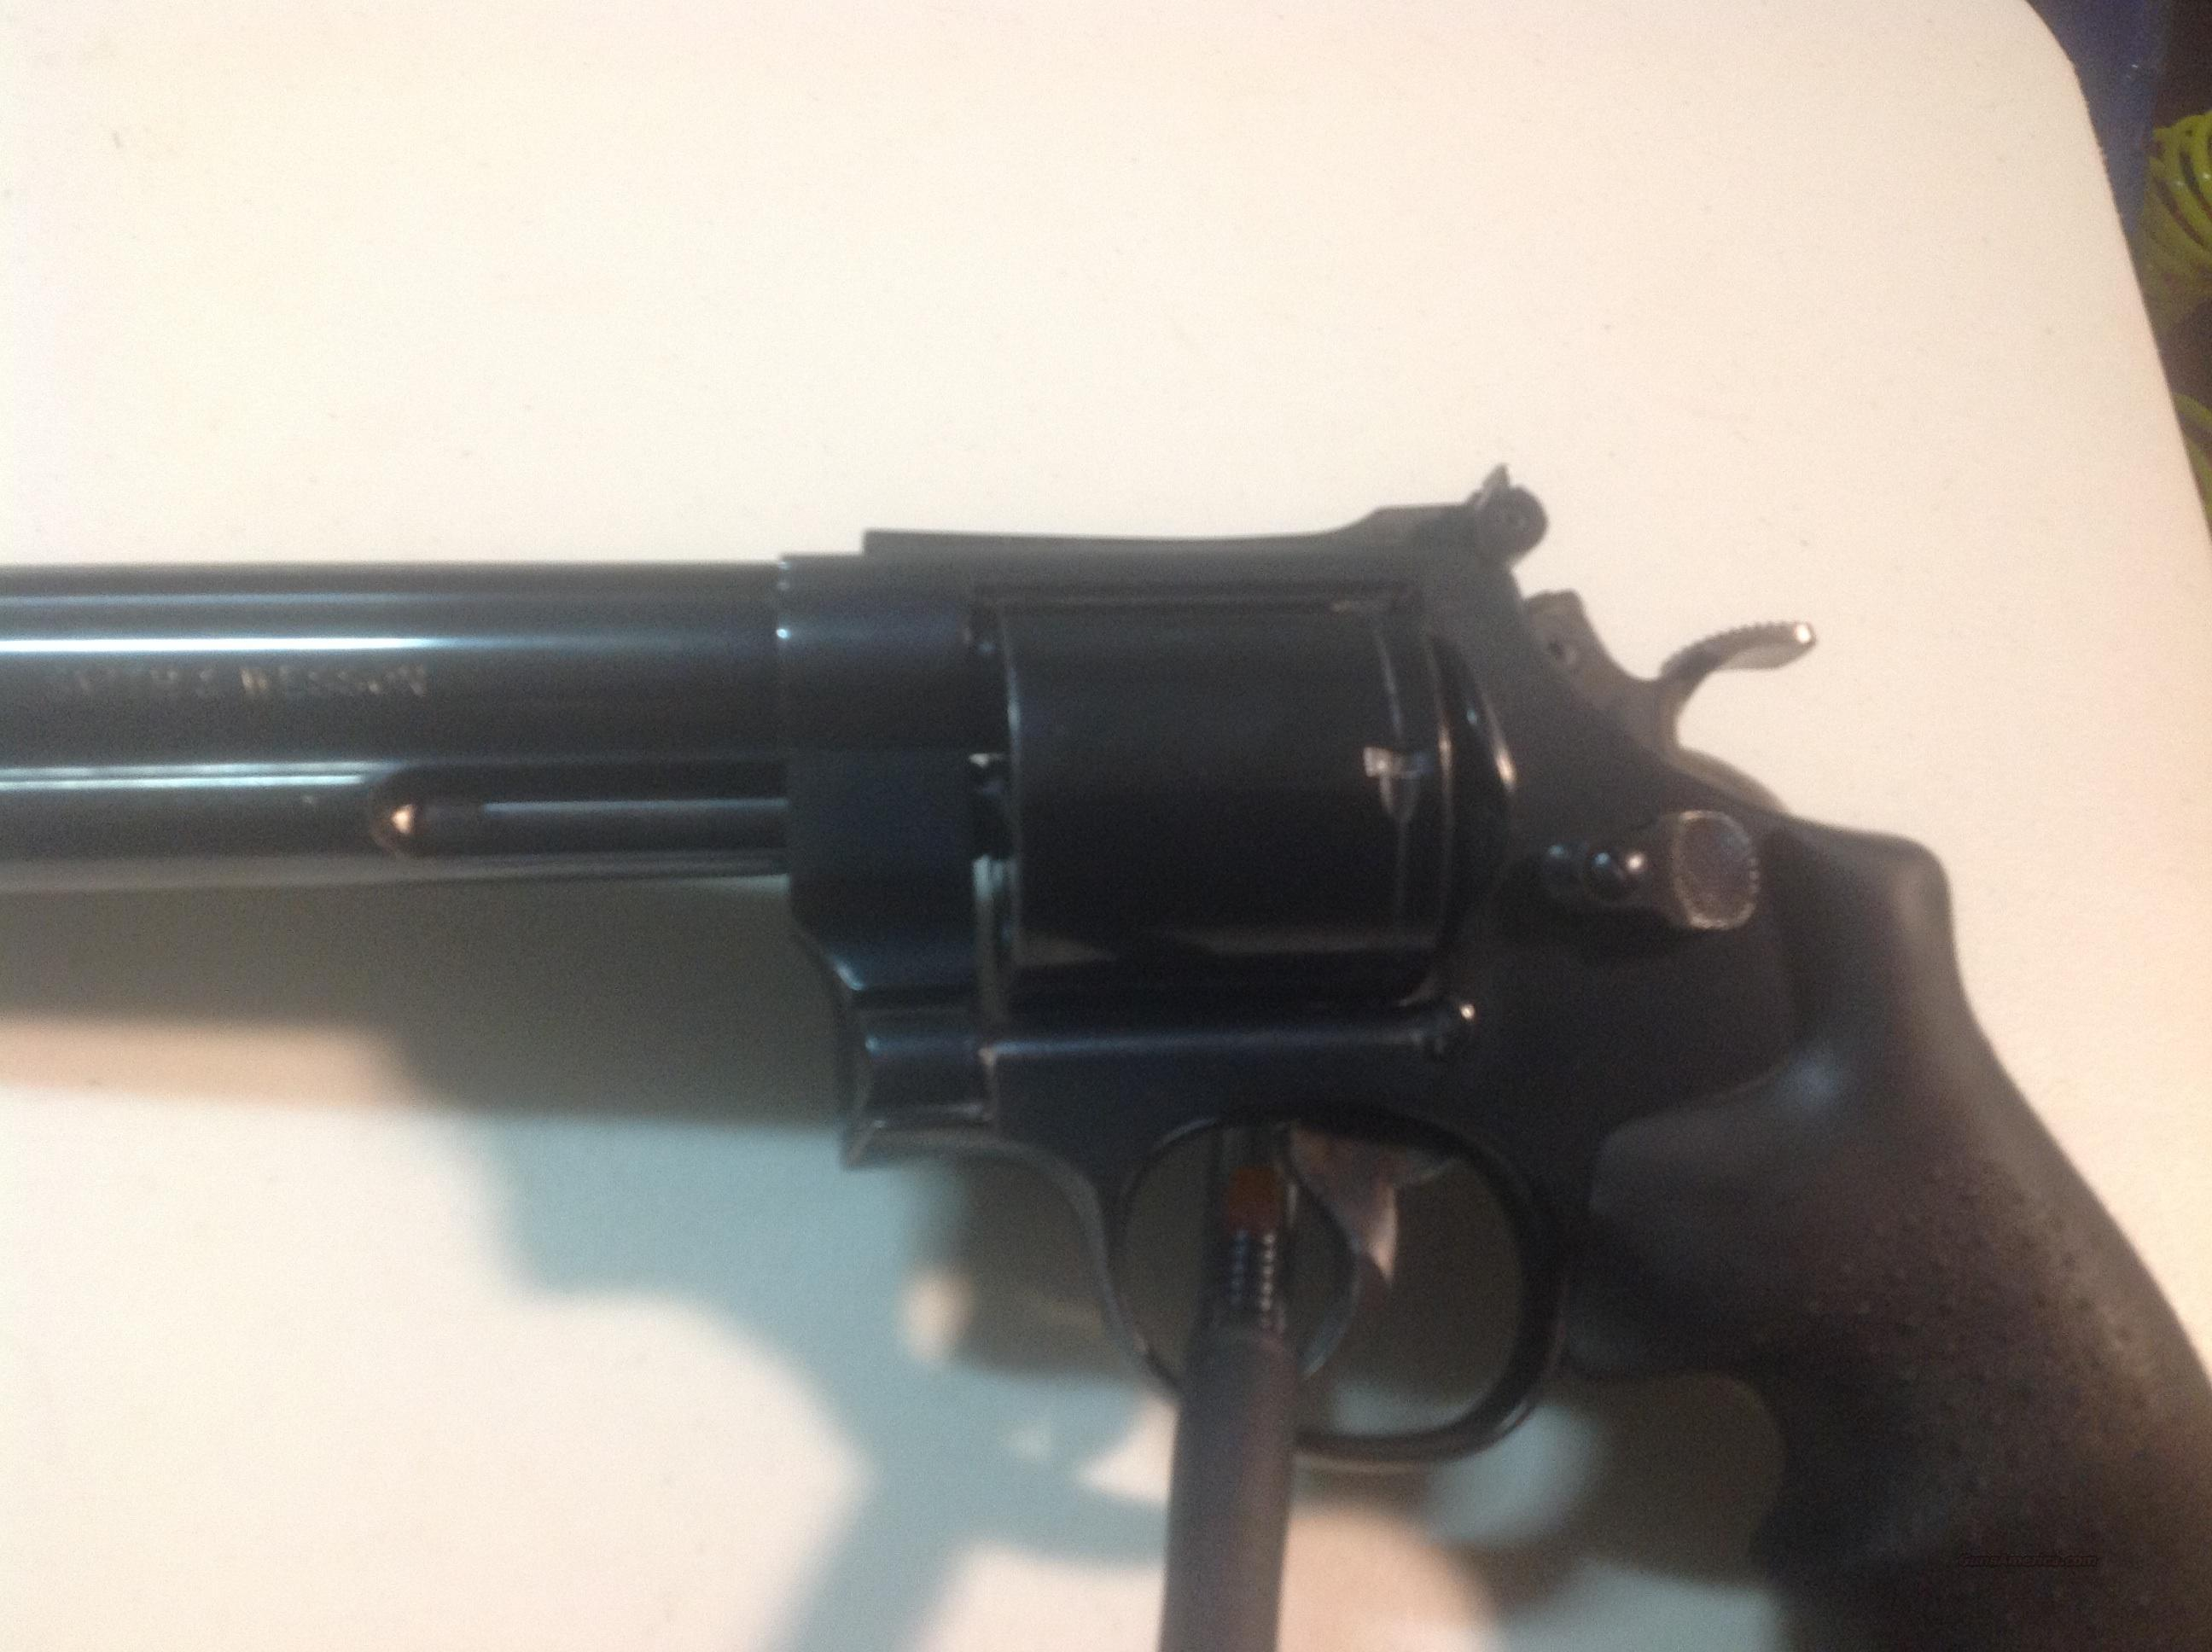 S&W M29 44 Magnum 8 3/8 inch/full barrel lug.   Guns > Pistols > Smith & Wesson Revolvers > Full Frame Revolver